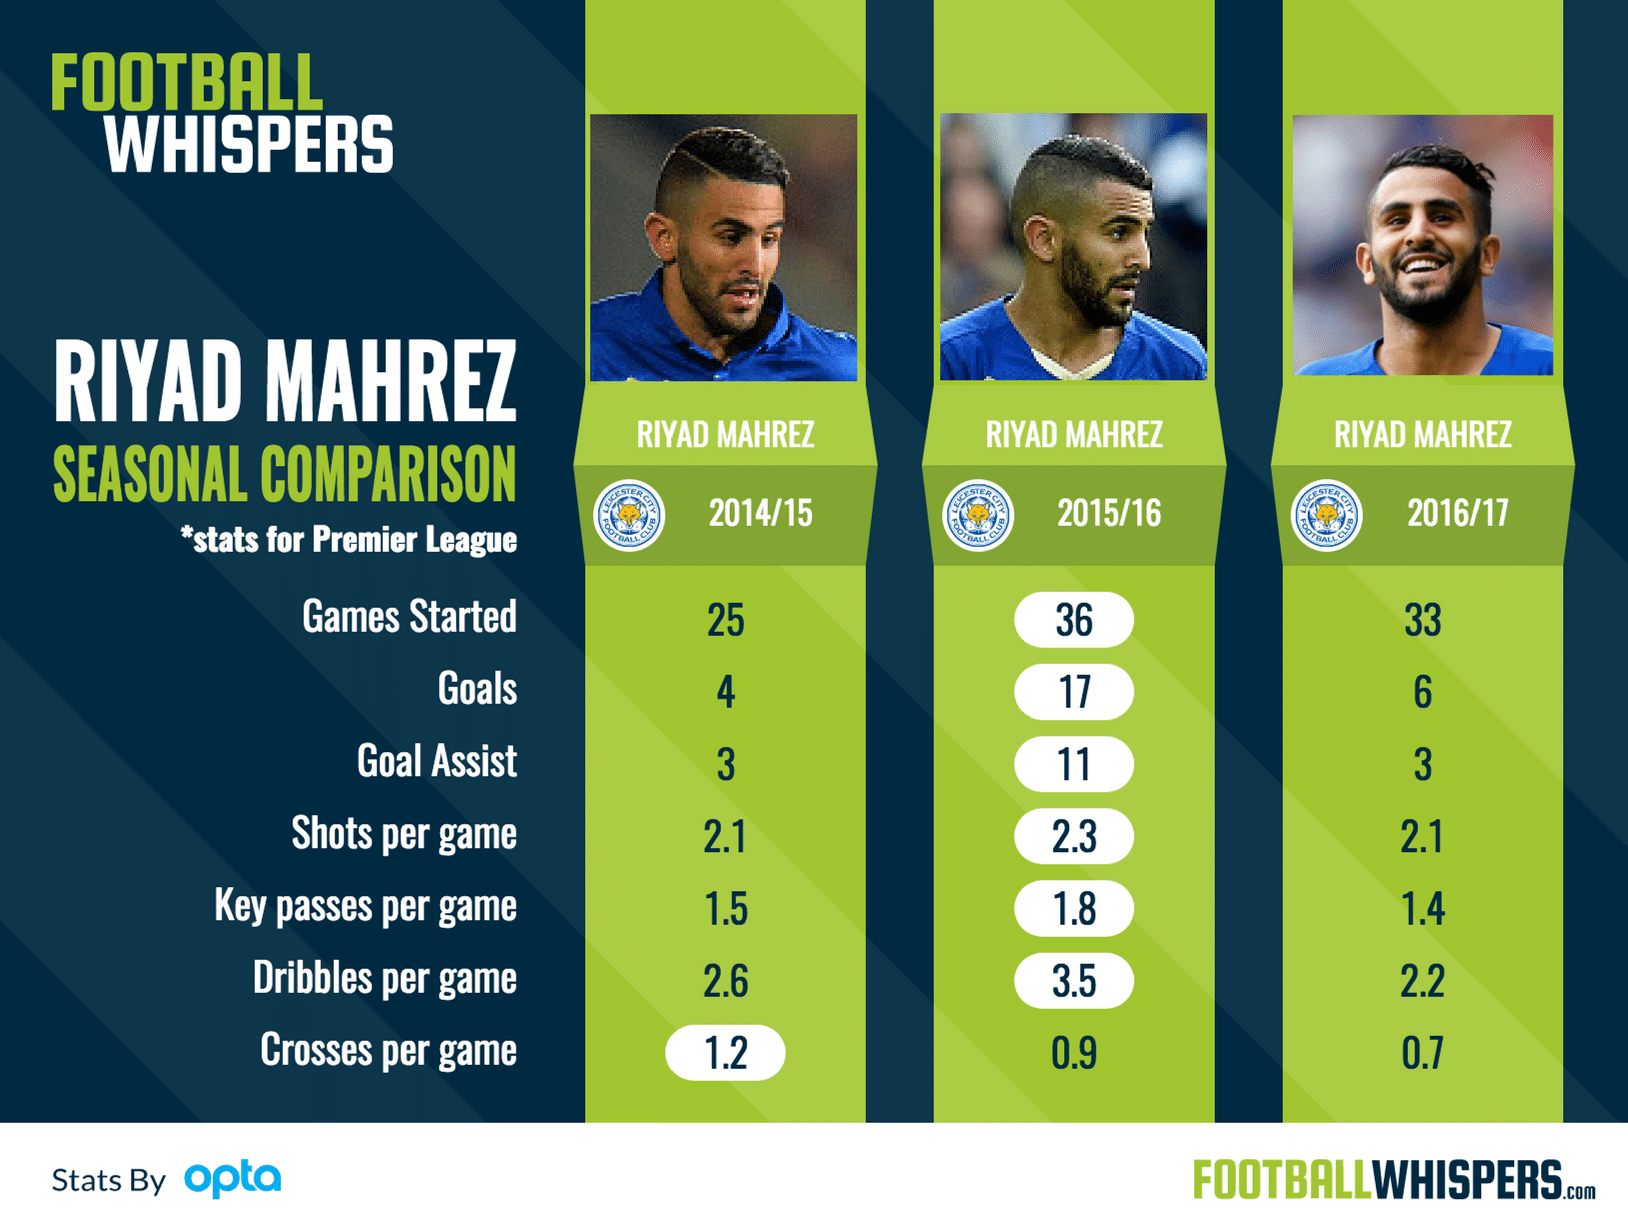 Leicester City winger Riyad Mahrez's stats compared over the last three seasons